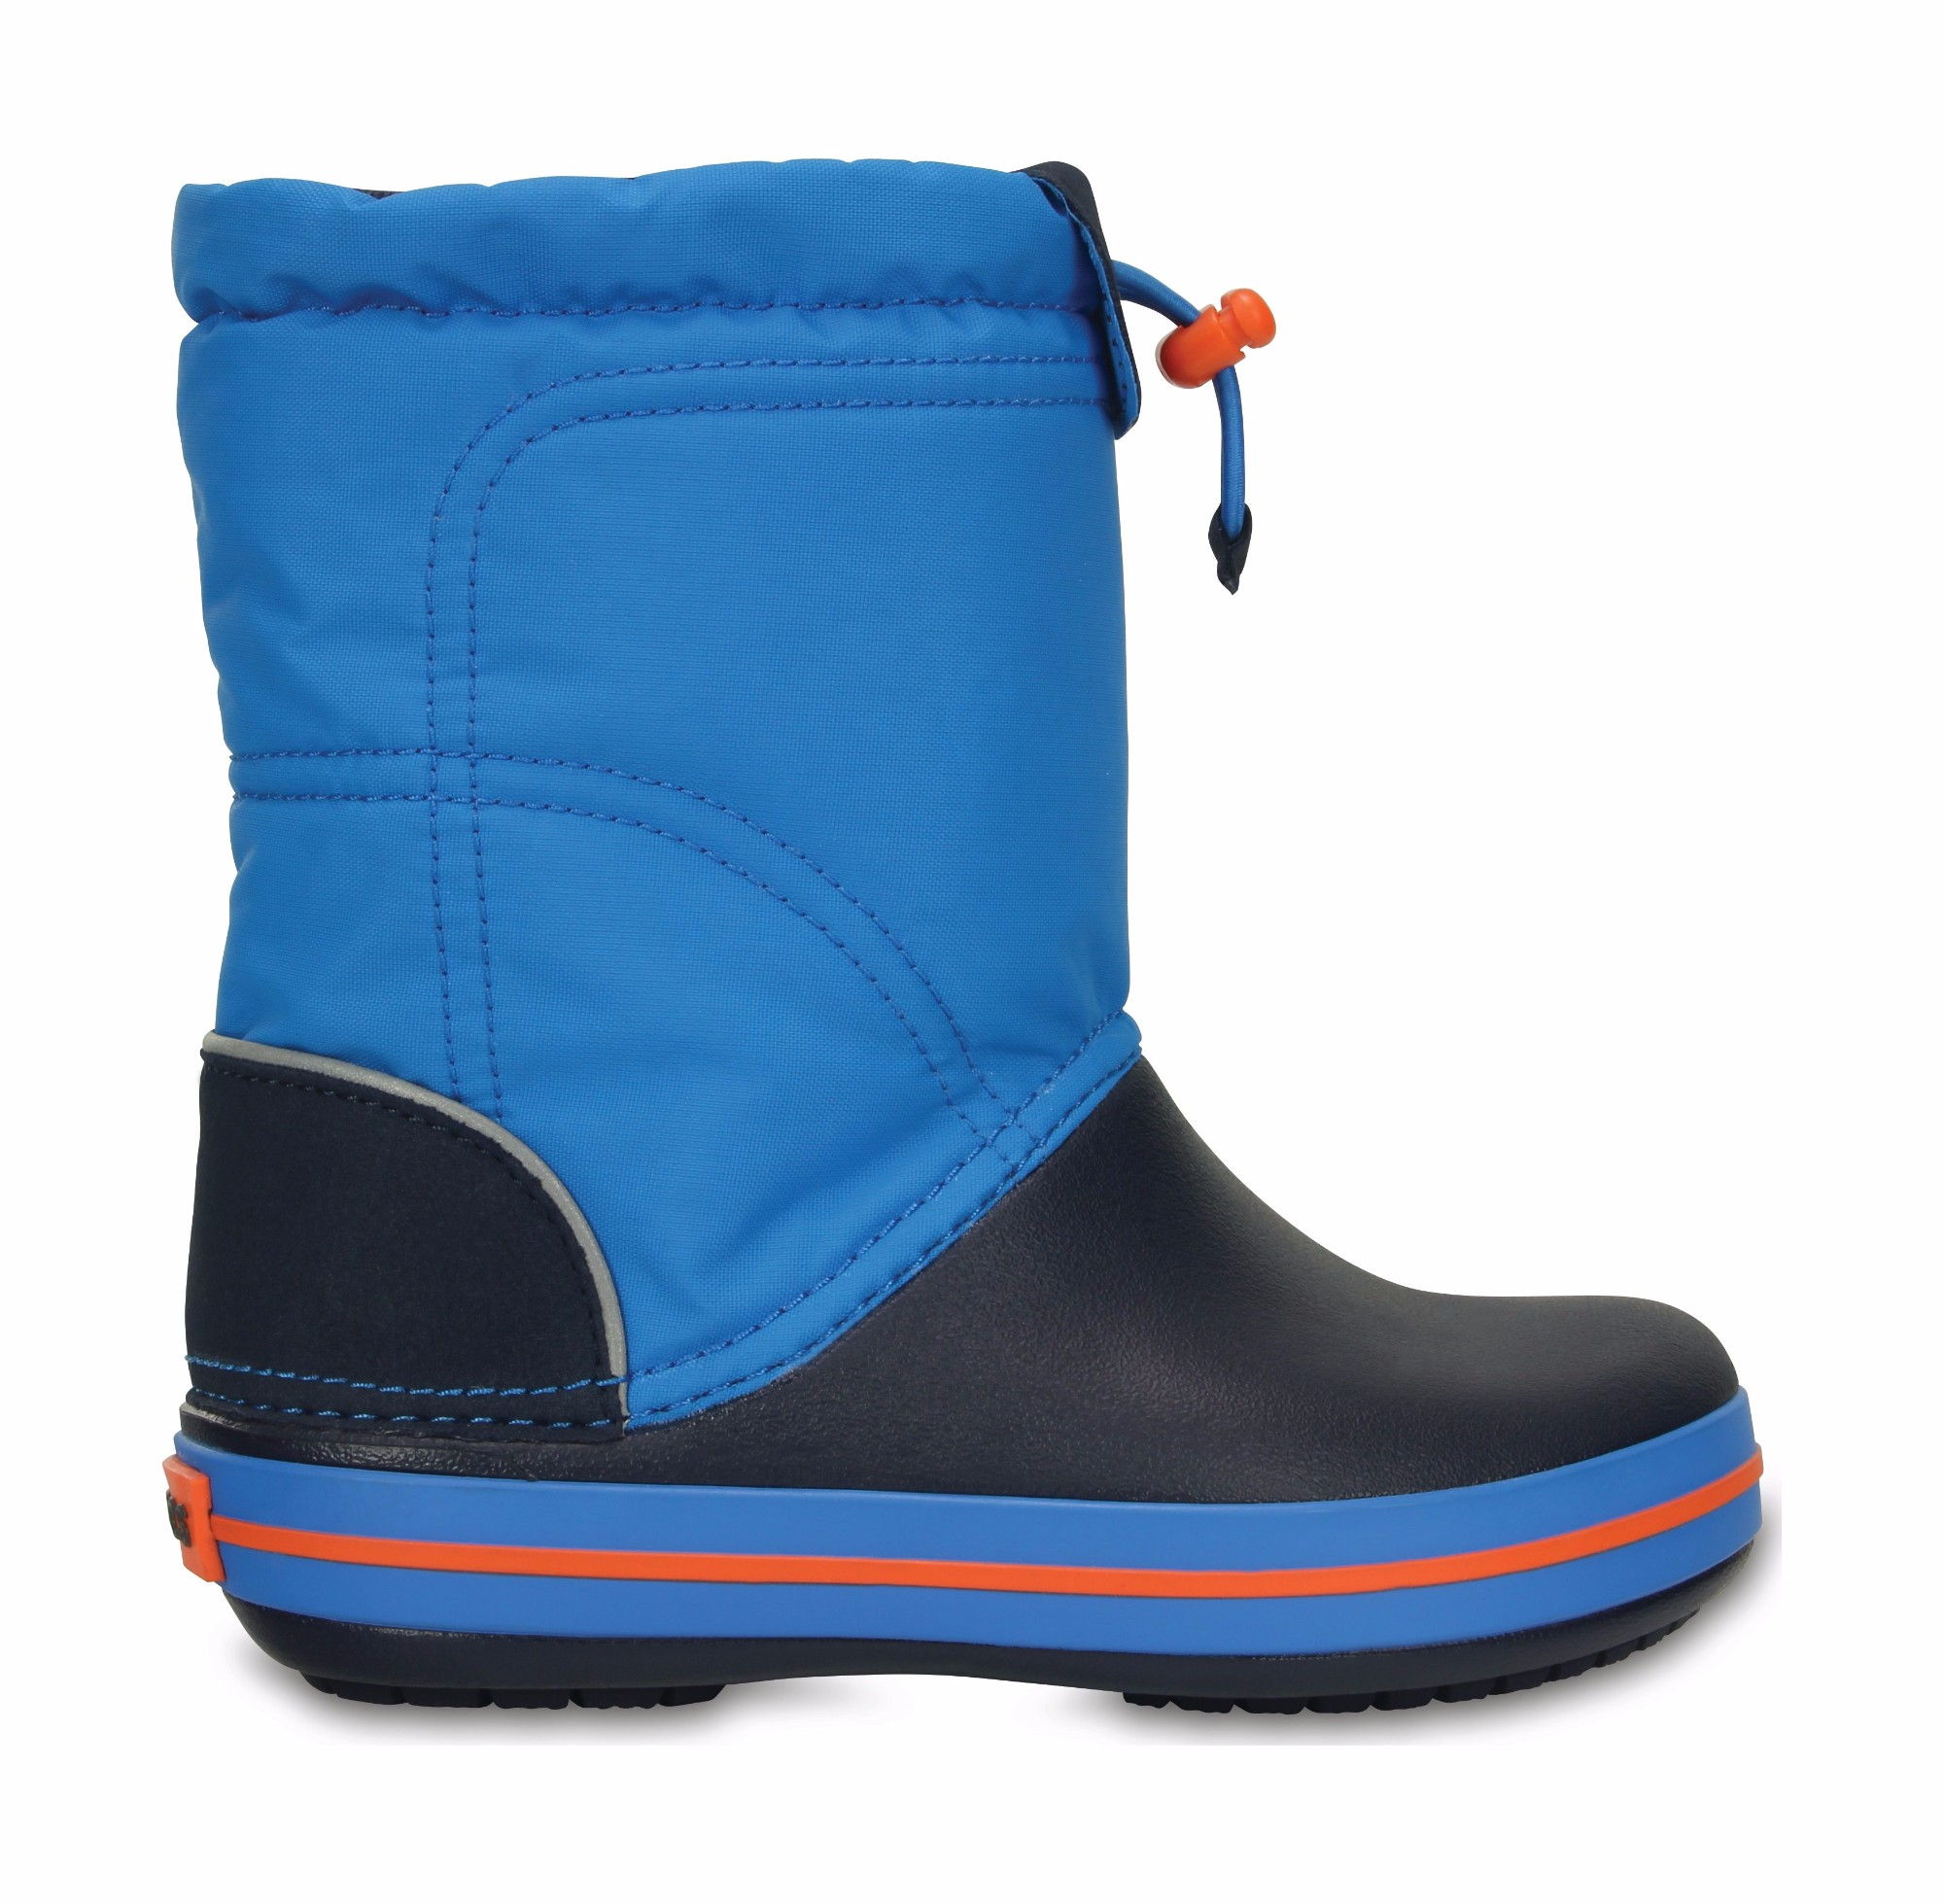 Crocs™ Kids' Crocband Lodgepoint Boot Ocean/Navy 37,5